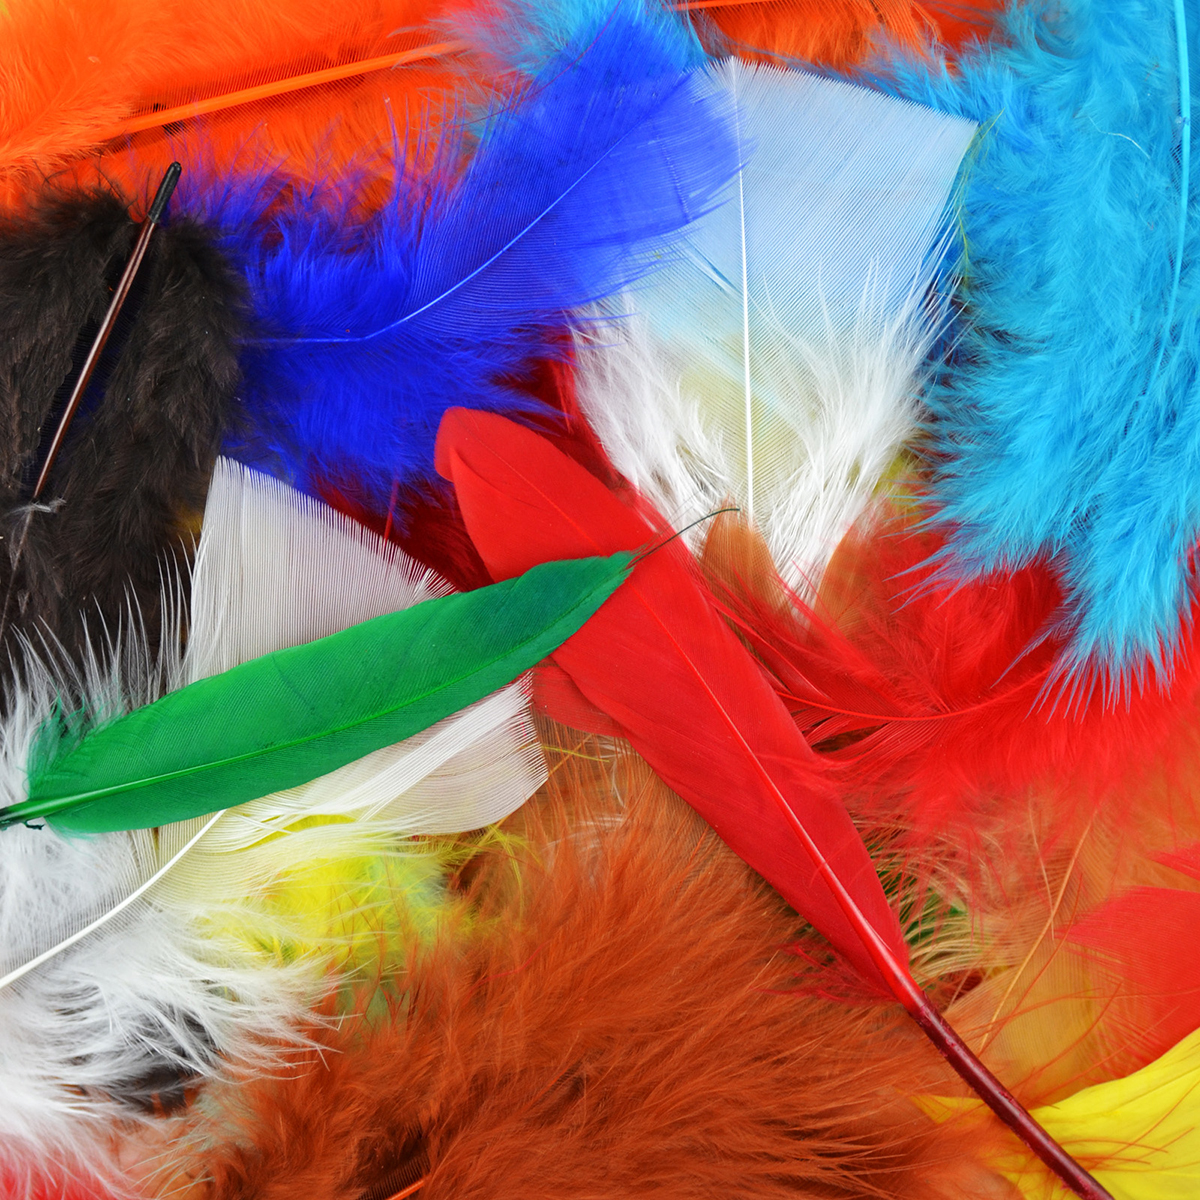 Packaged Feathers 71g-Assorted Colors - image 2 de 2